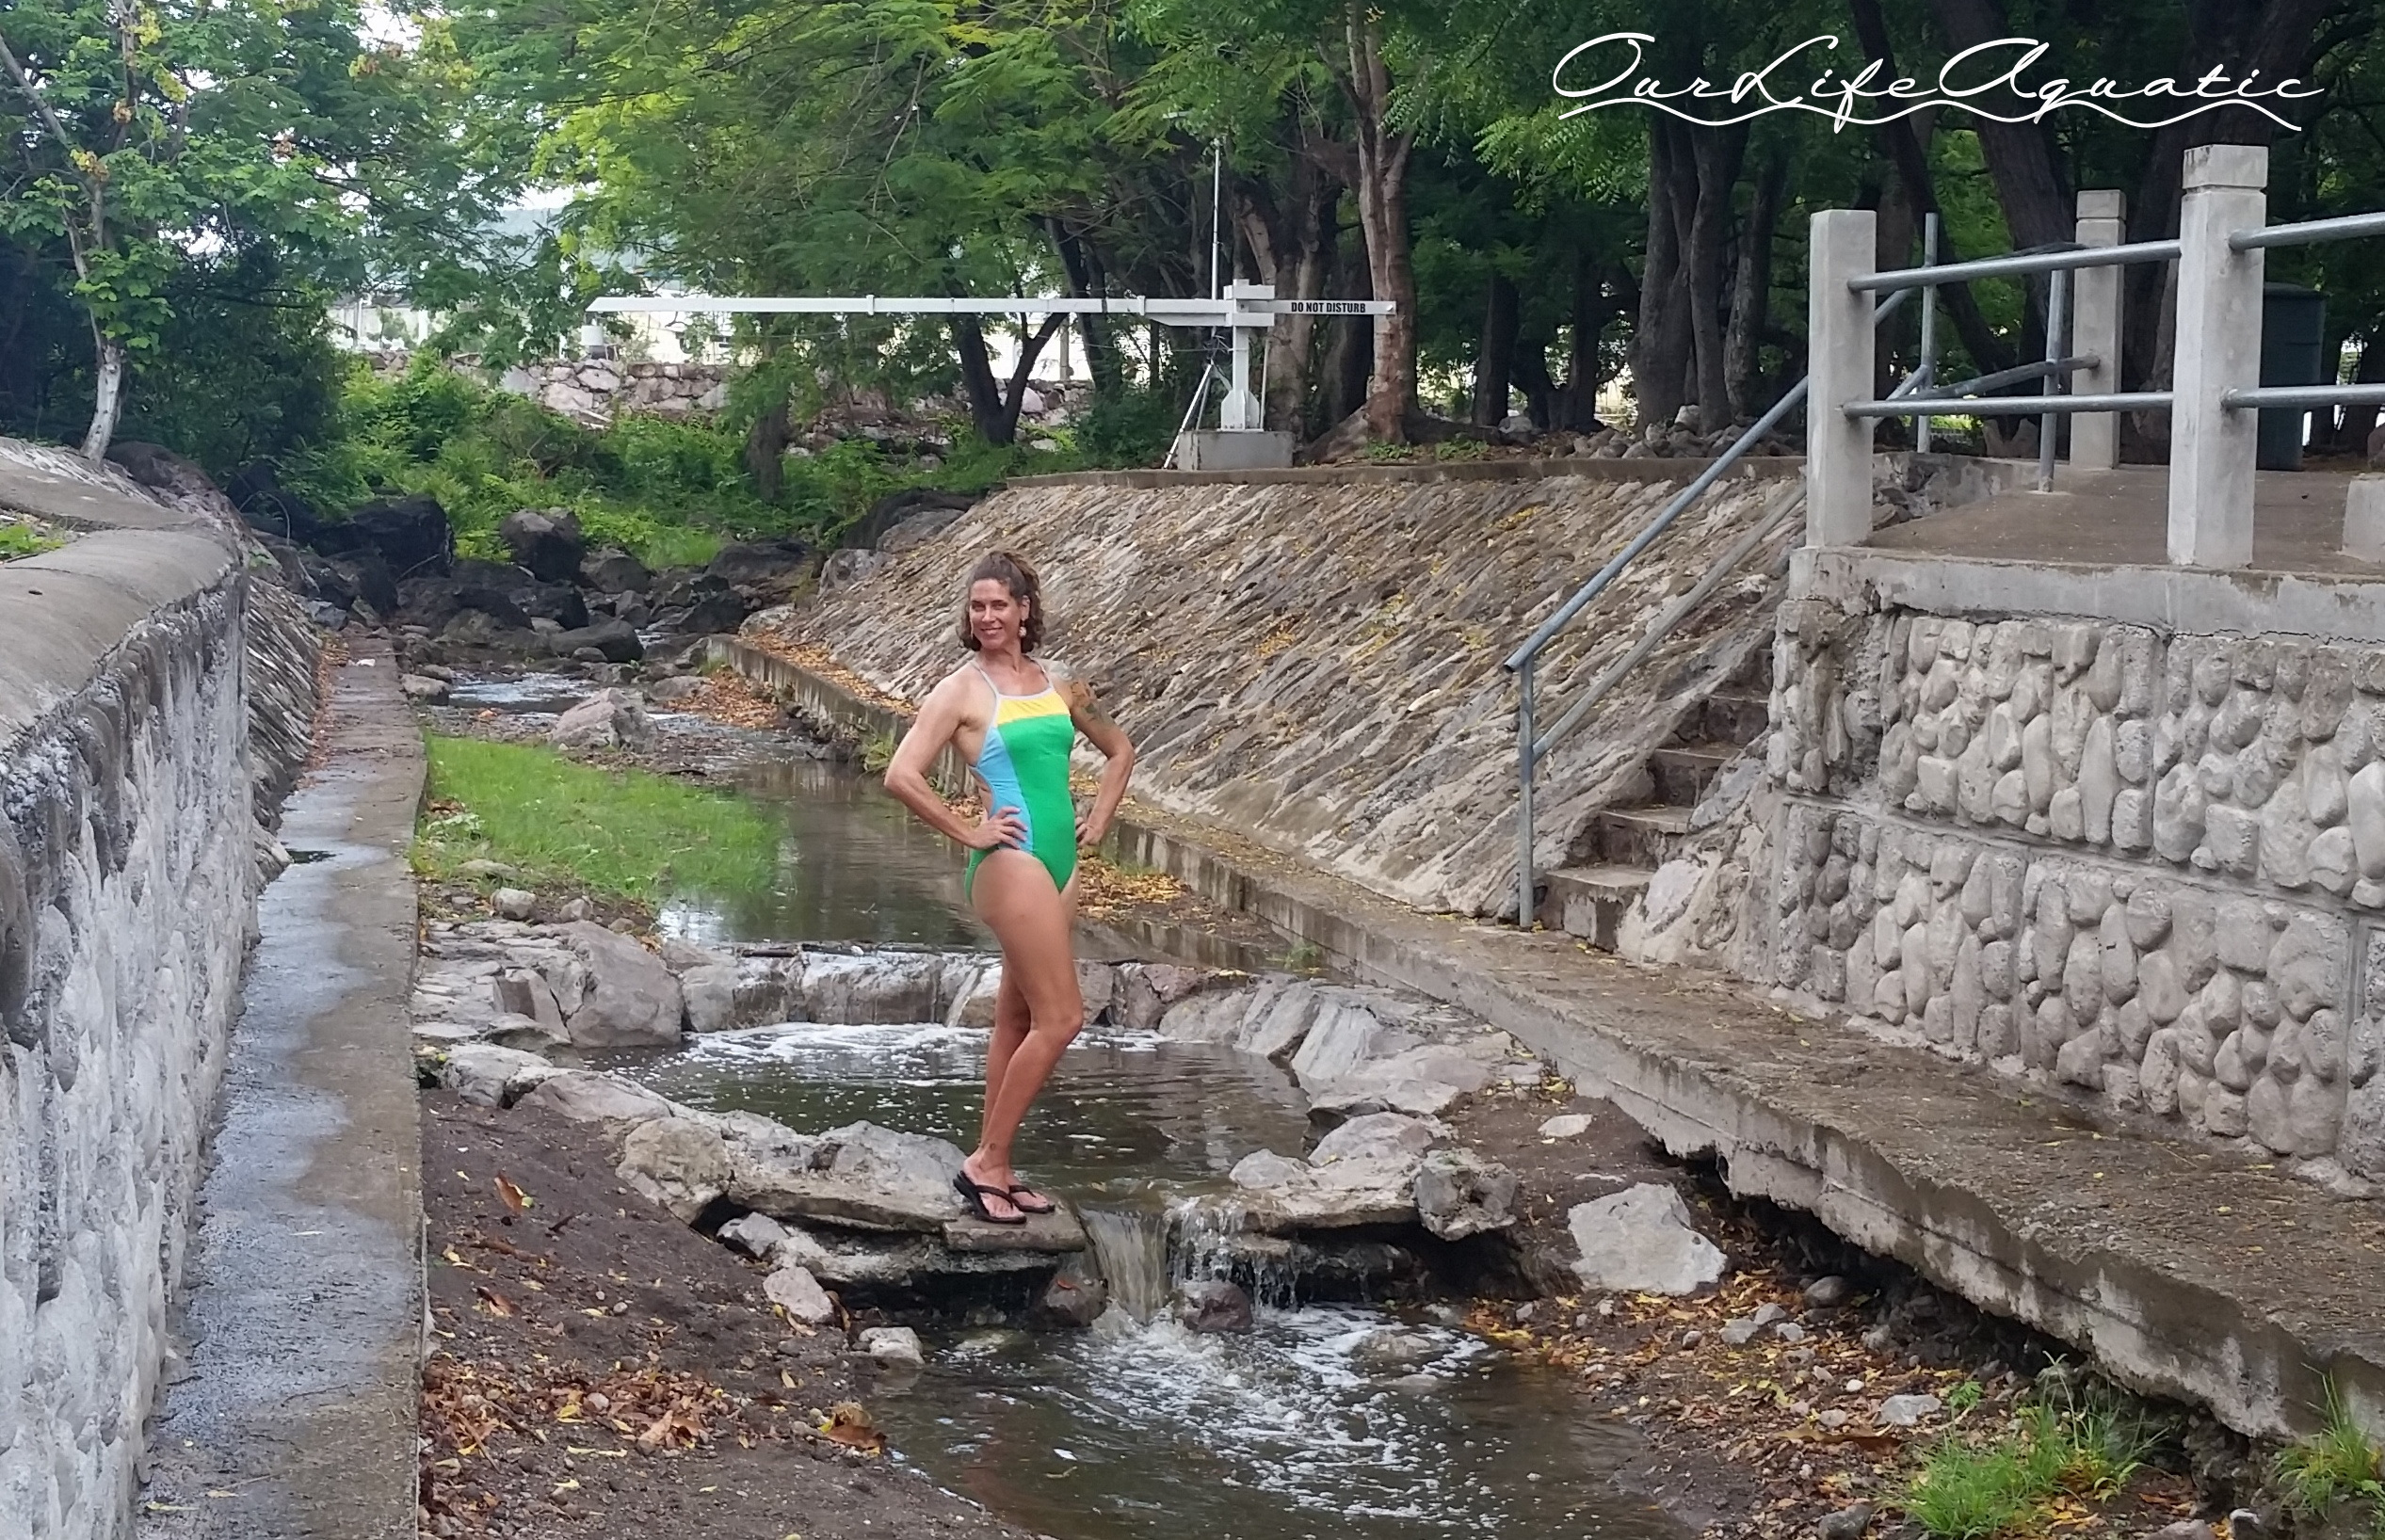 Hot springs river next to baths